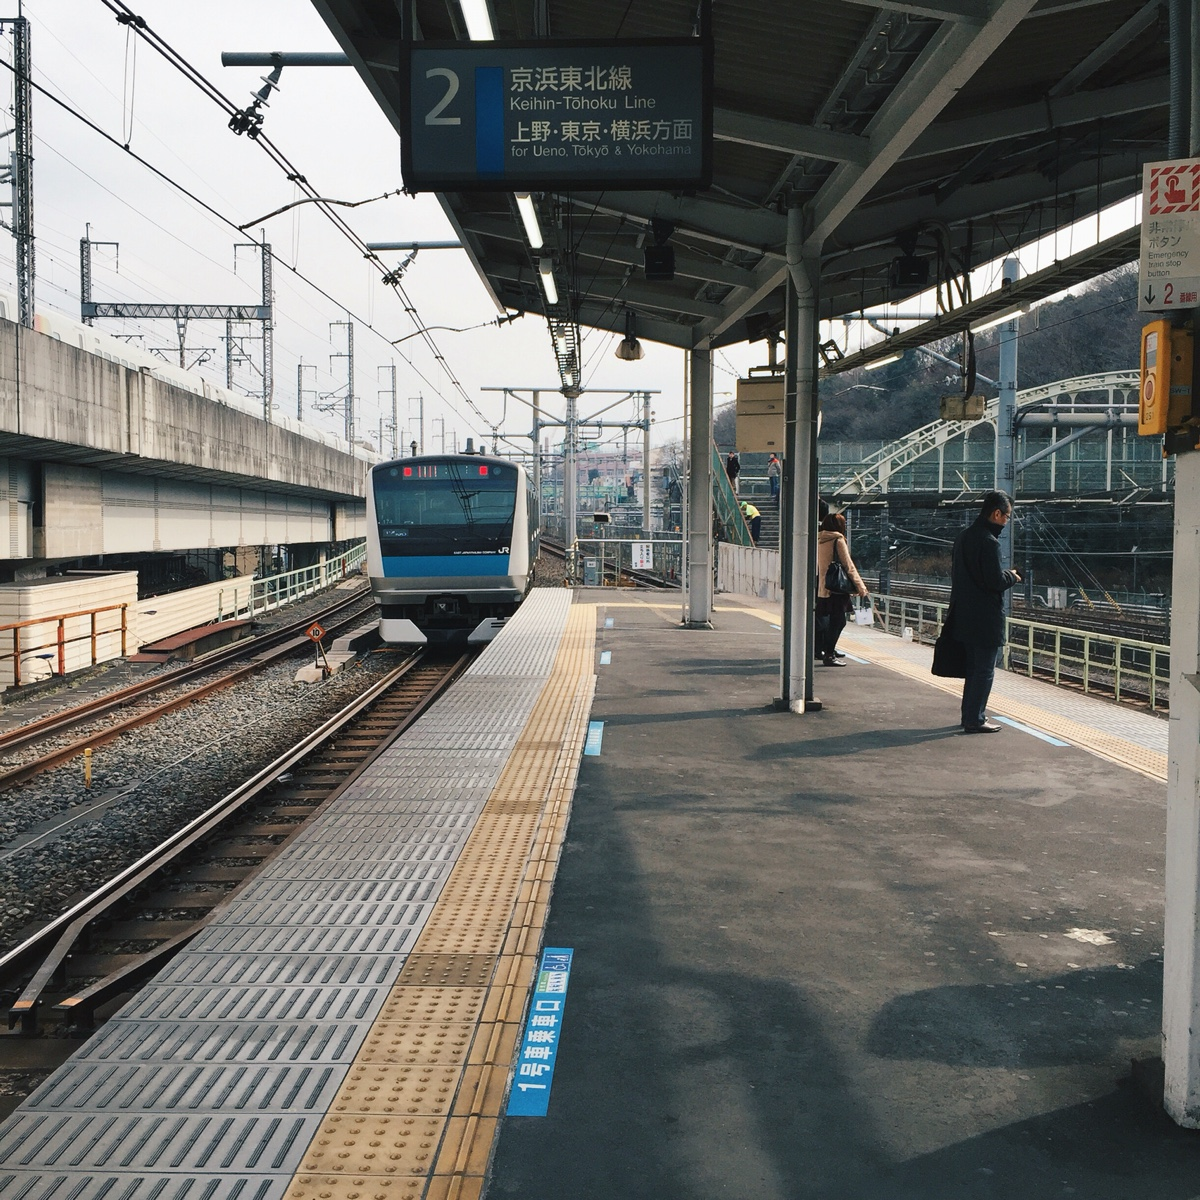 train-kehin-tohoku.jpg